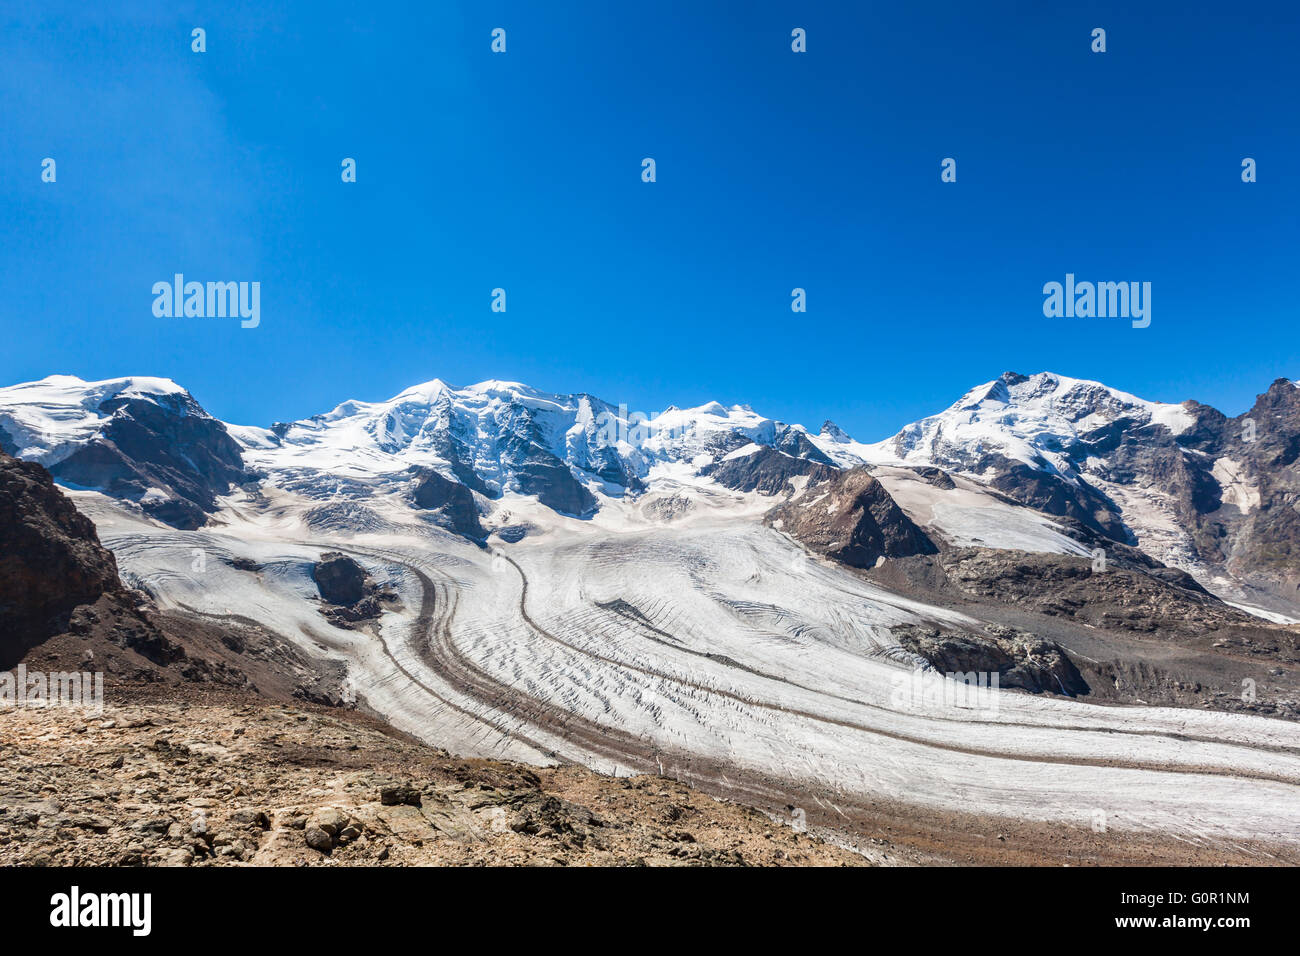 Stunning view of the Bernina massive and Morteratsch glacier at the mountain house of Diavolezza in Engadine area - Stock Image